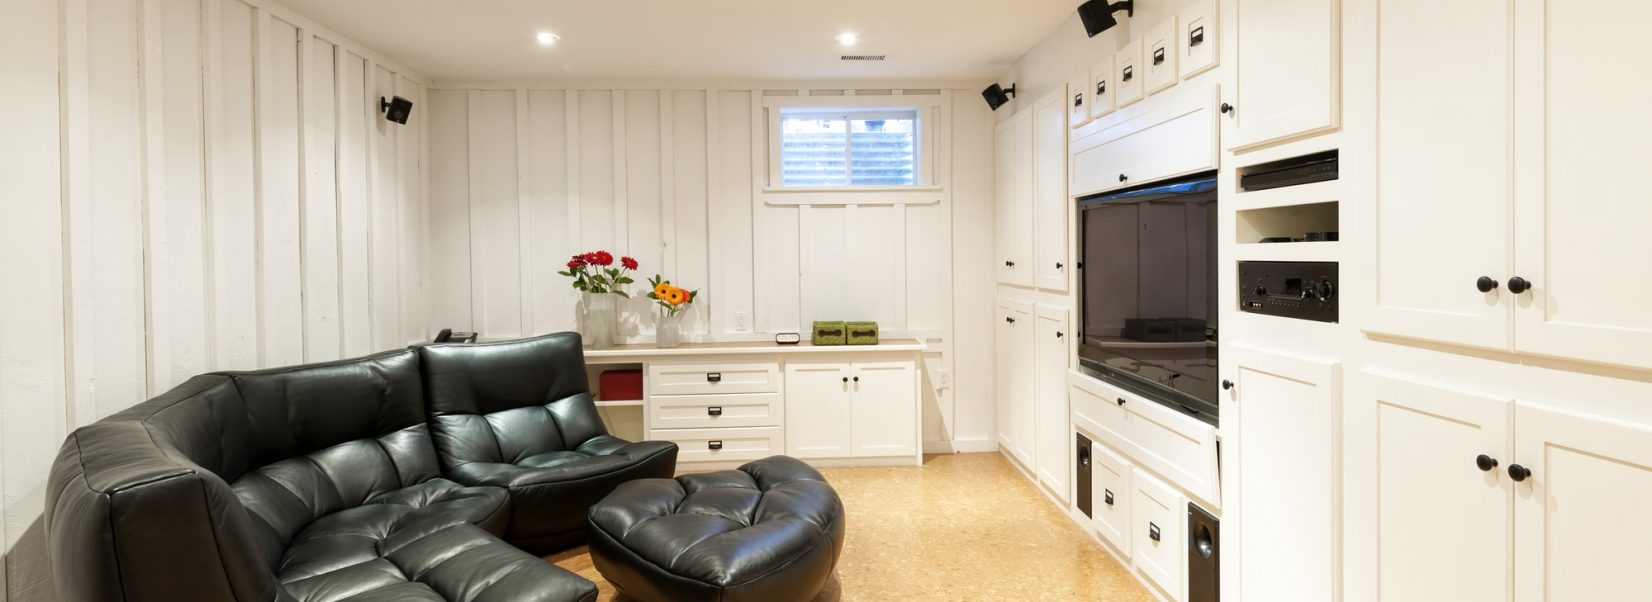 Basement Remodeling Ideas For Your St Louis Home